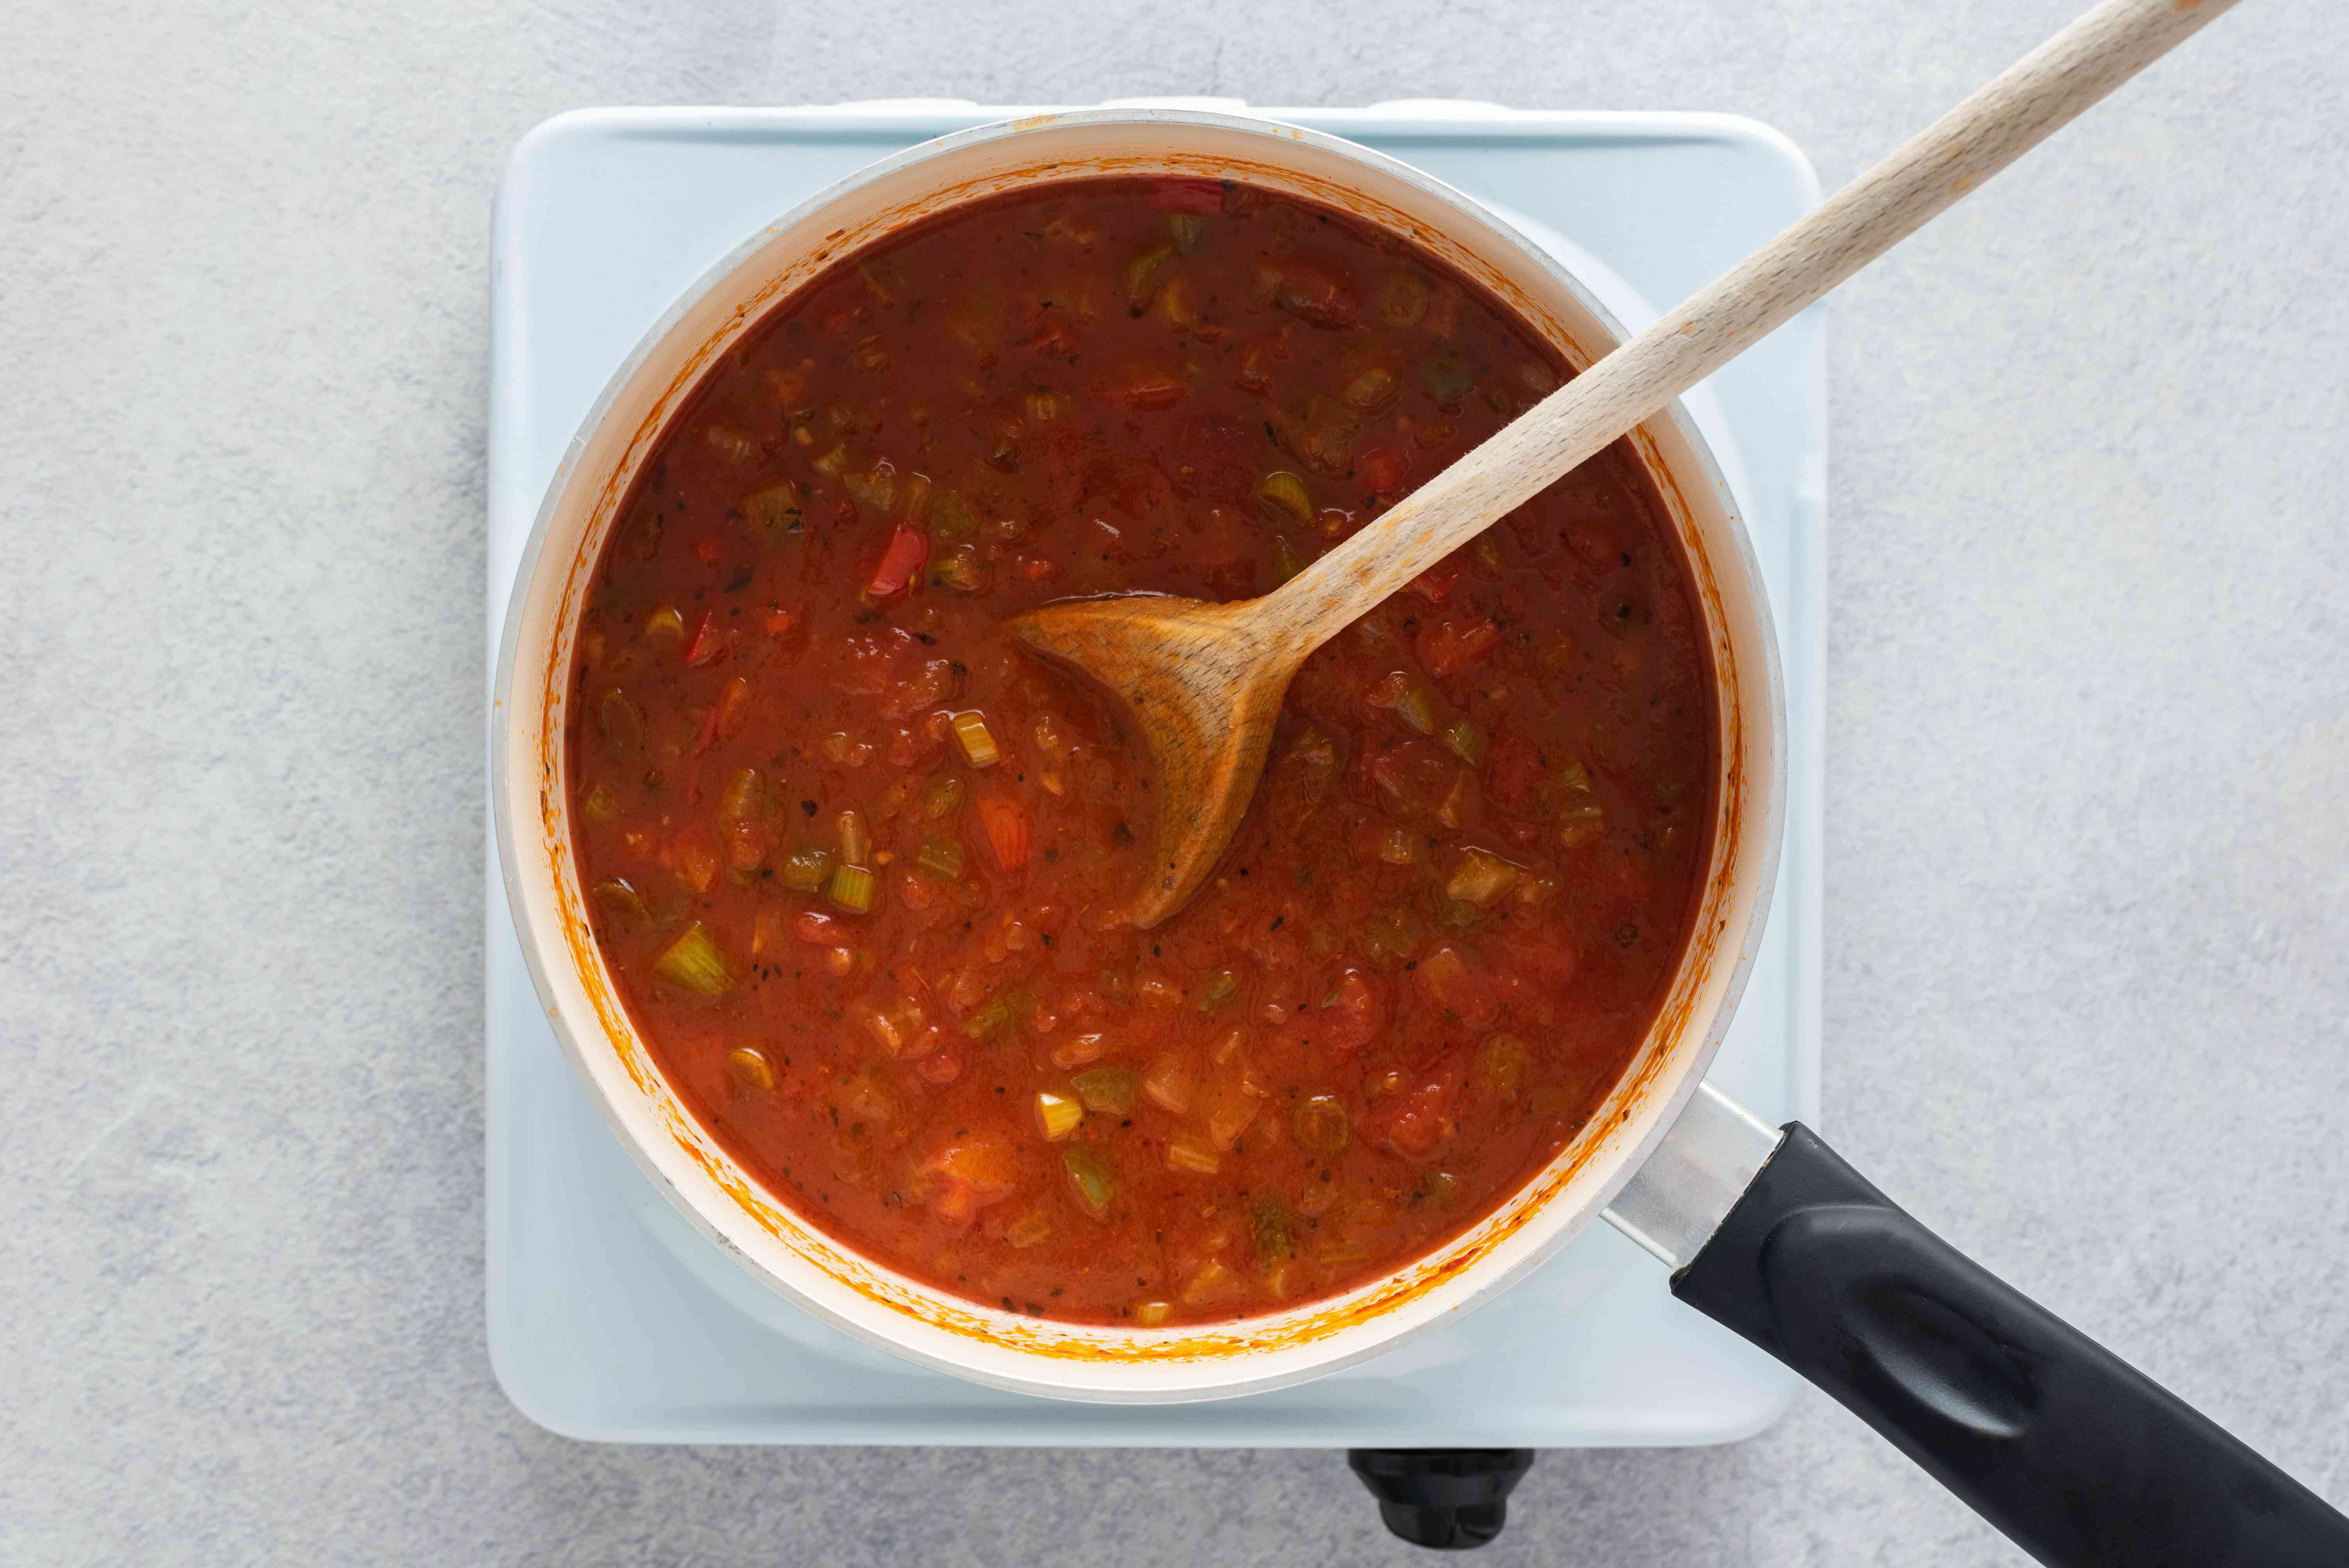 vegetable, seasoning and stock mixture in a pot